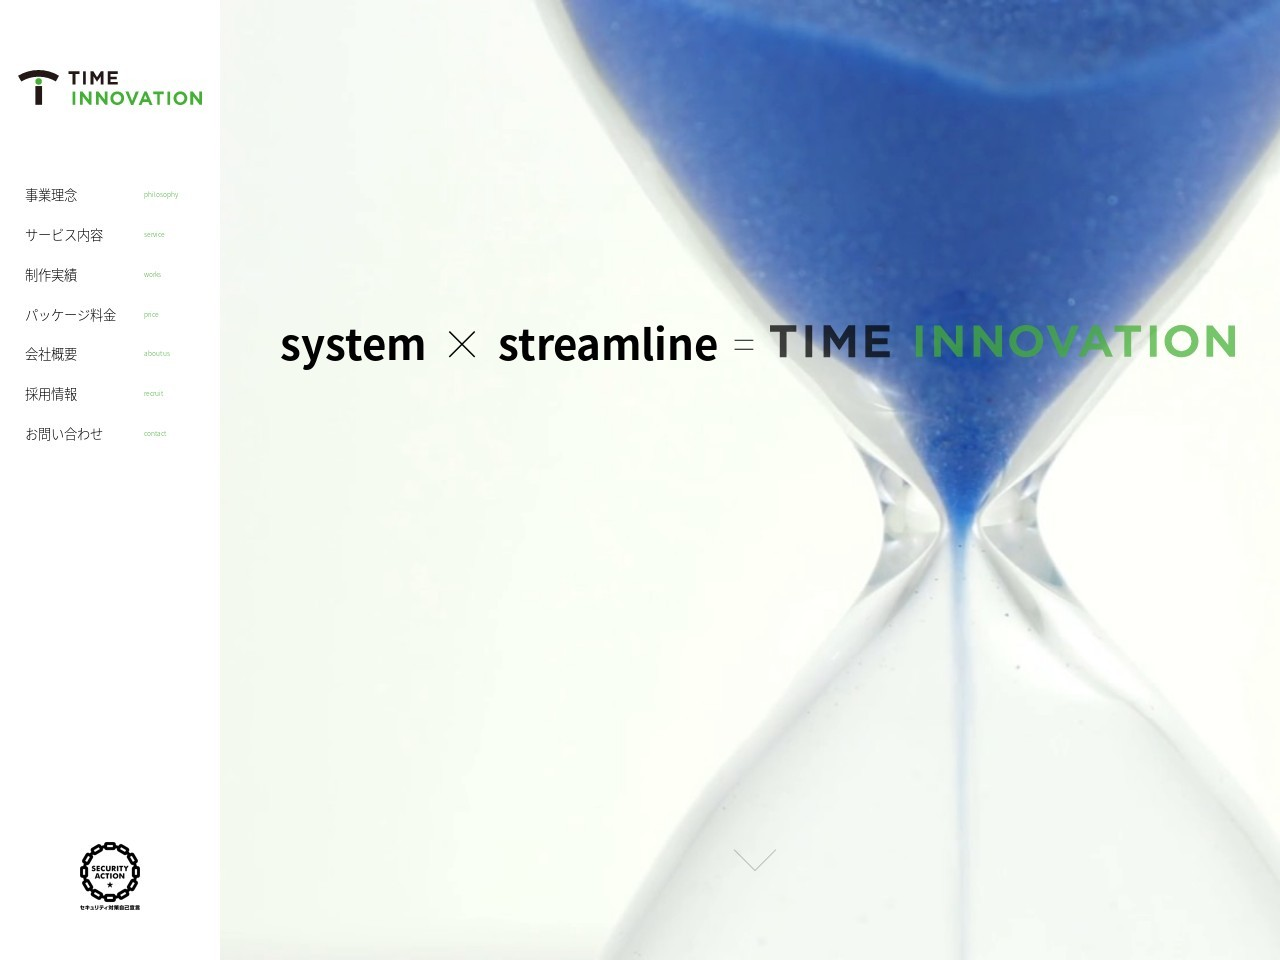 株式会社TIMEINNOVATION